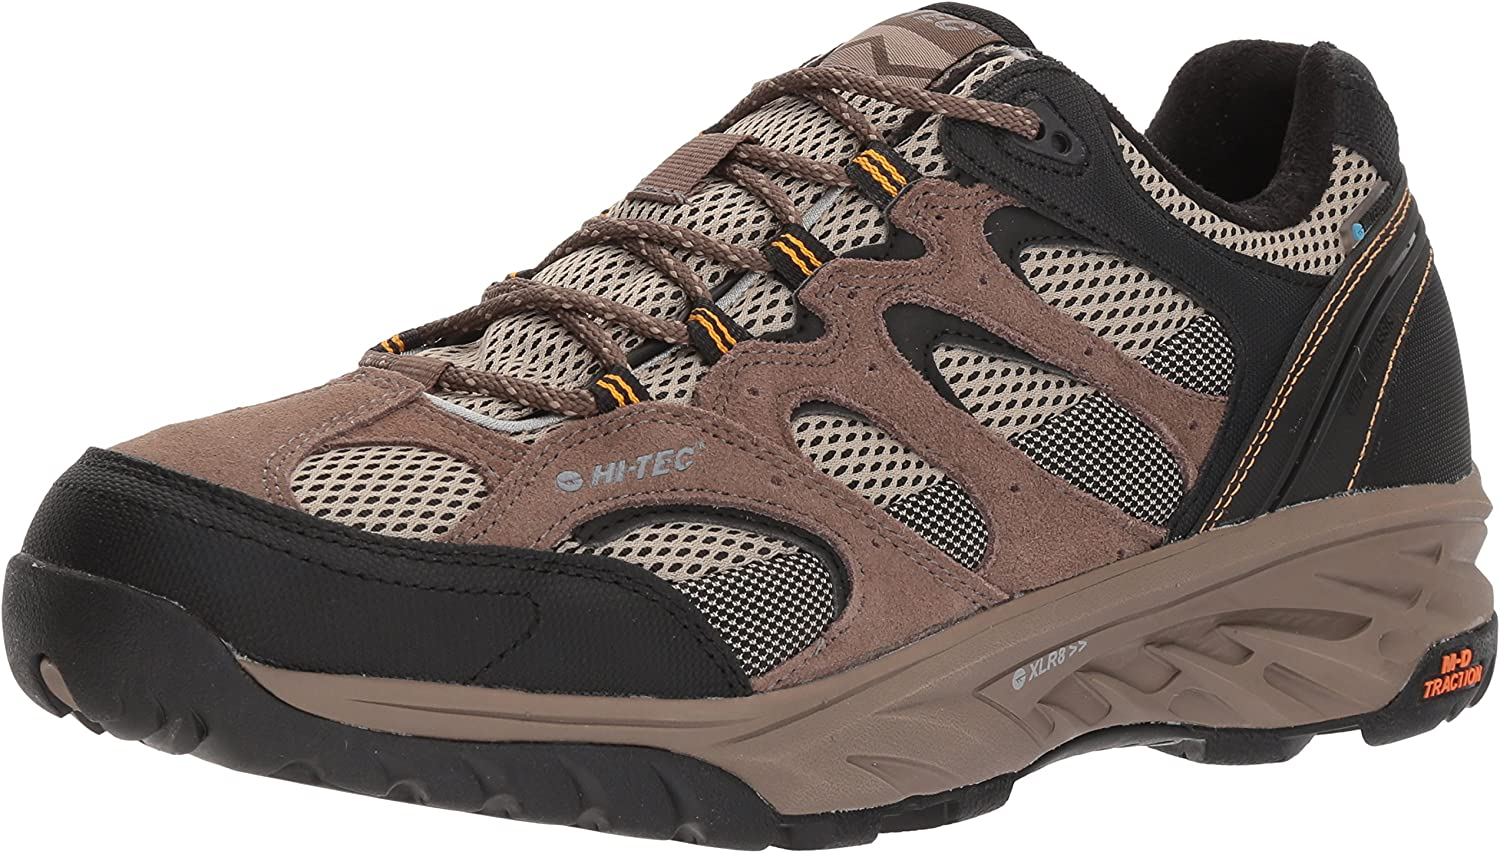 Hi-Tec Hommes's V-LITE Wild-FIRE Faible I imperméable Hiking chaussures, Taupe Dune core or, 140M Medium US